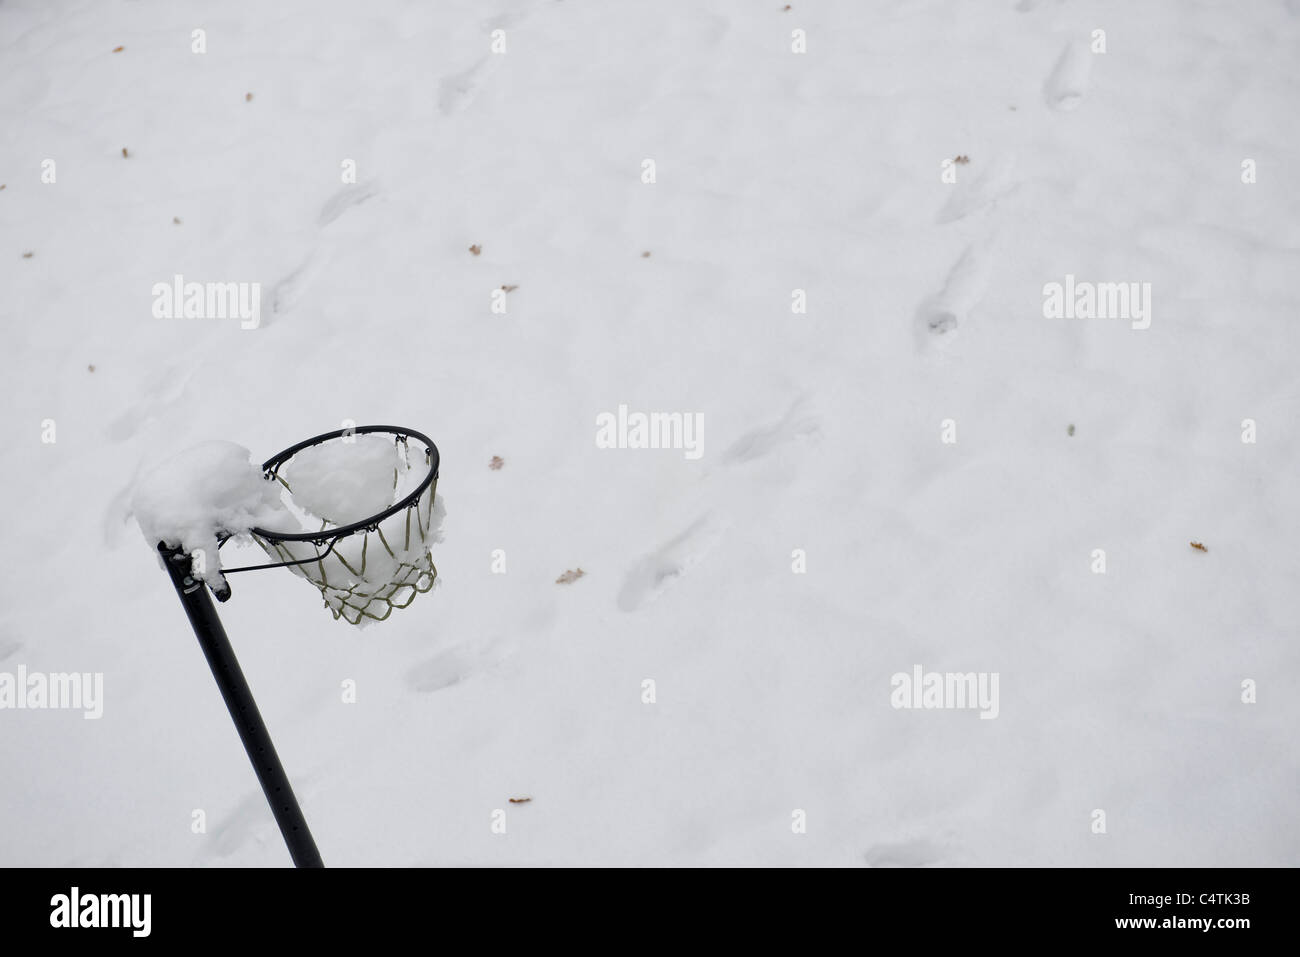 Basketball hoop covered in snow Stock Photo